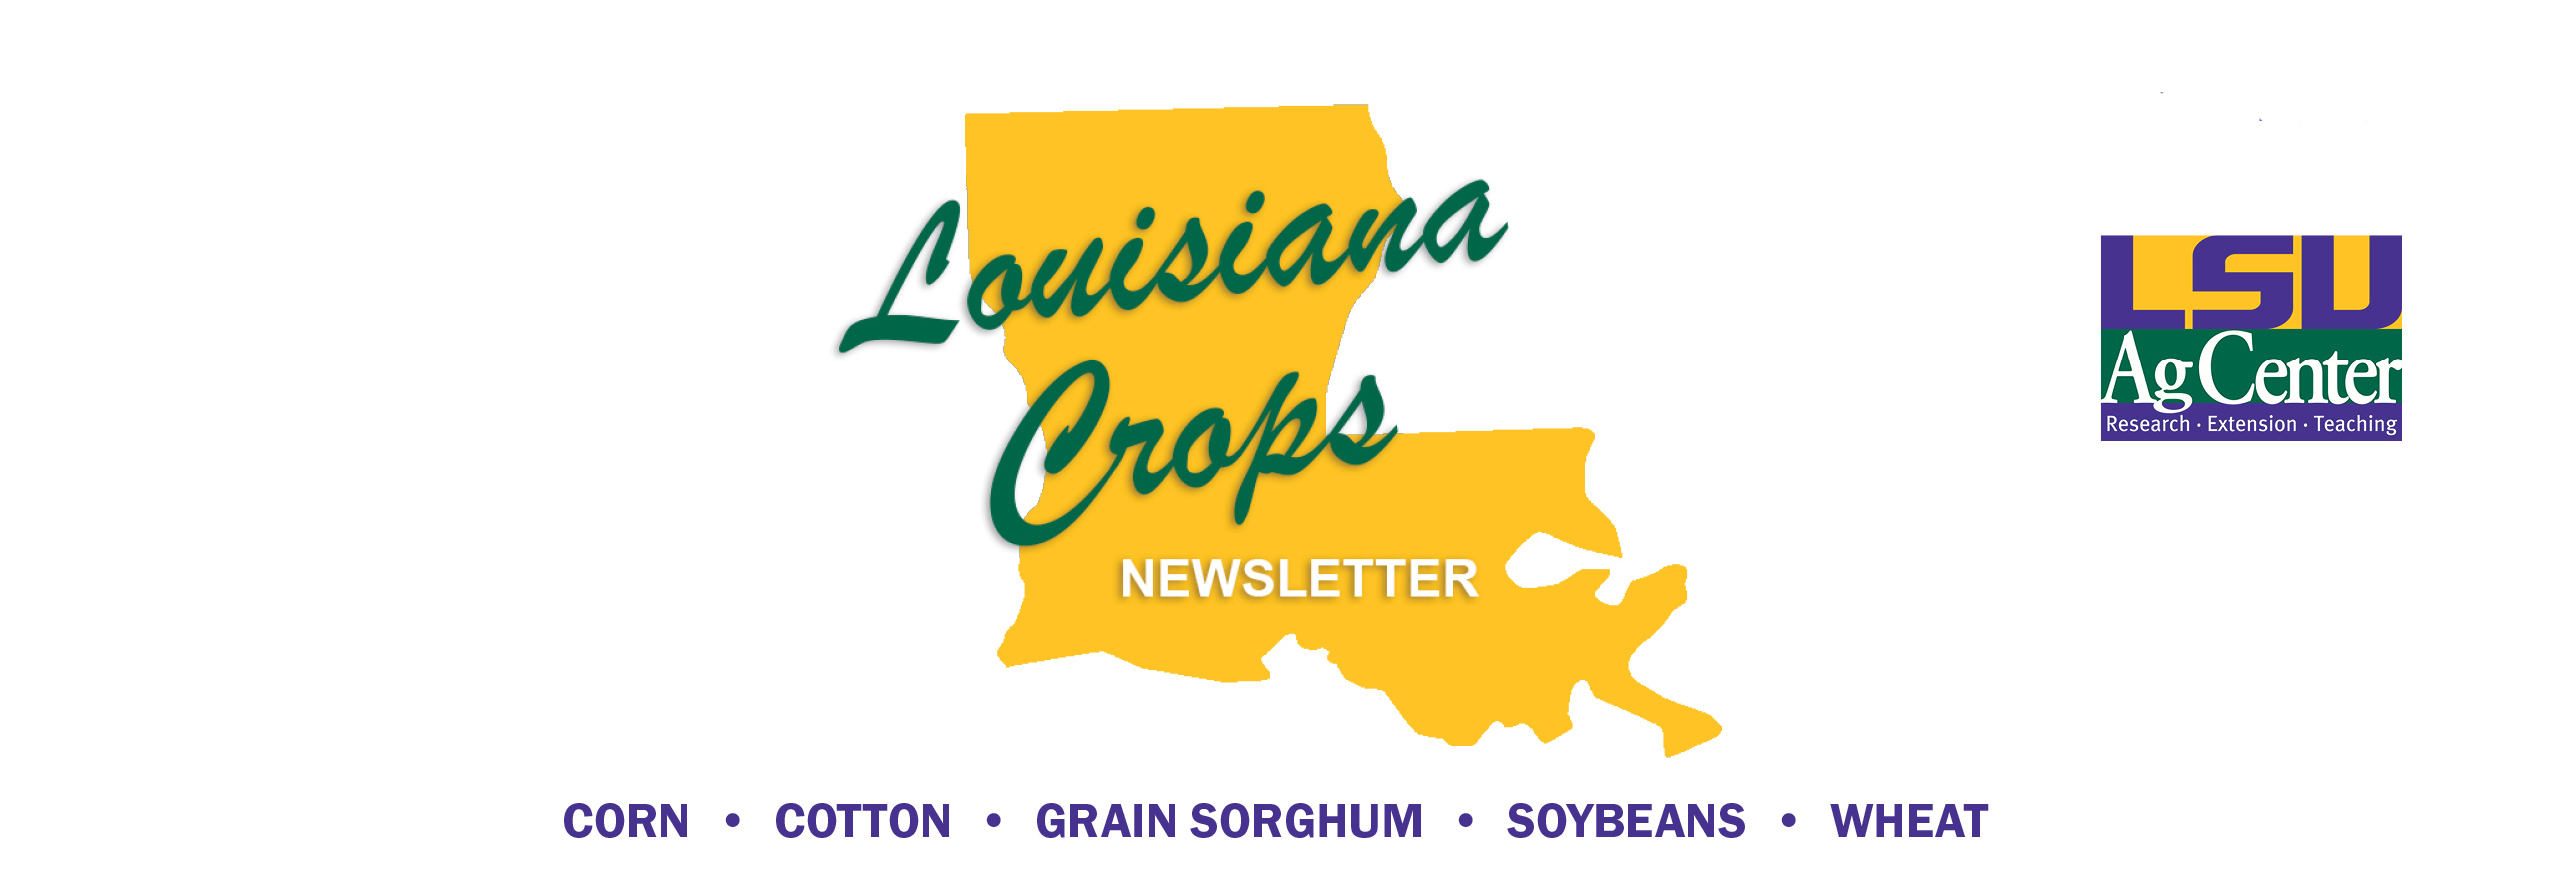 Louisiana Crops Newsletter Plain Banner.